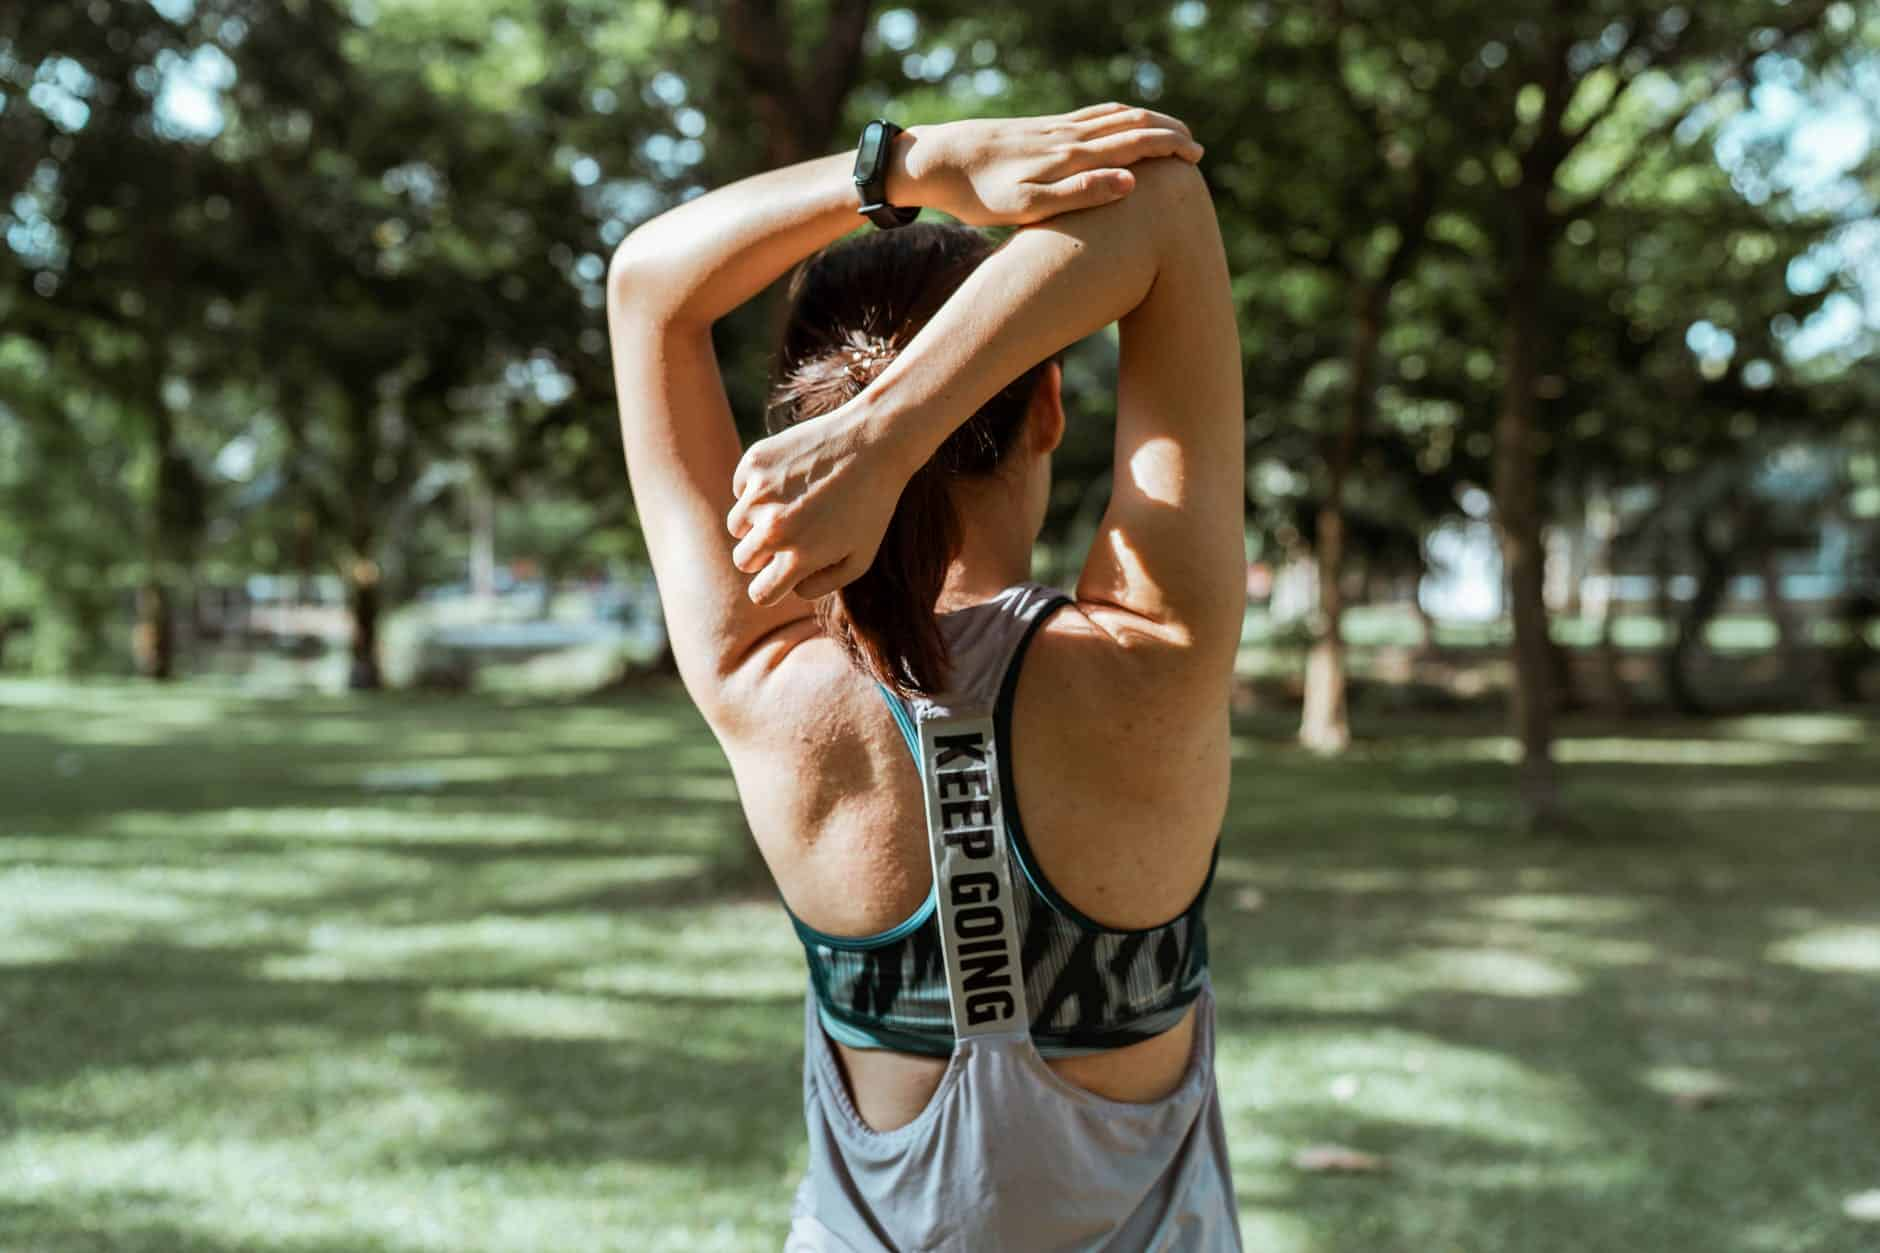 unrecognizable female athlete stretching muscles of arms and back - make change happen